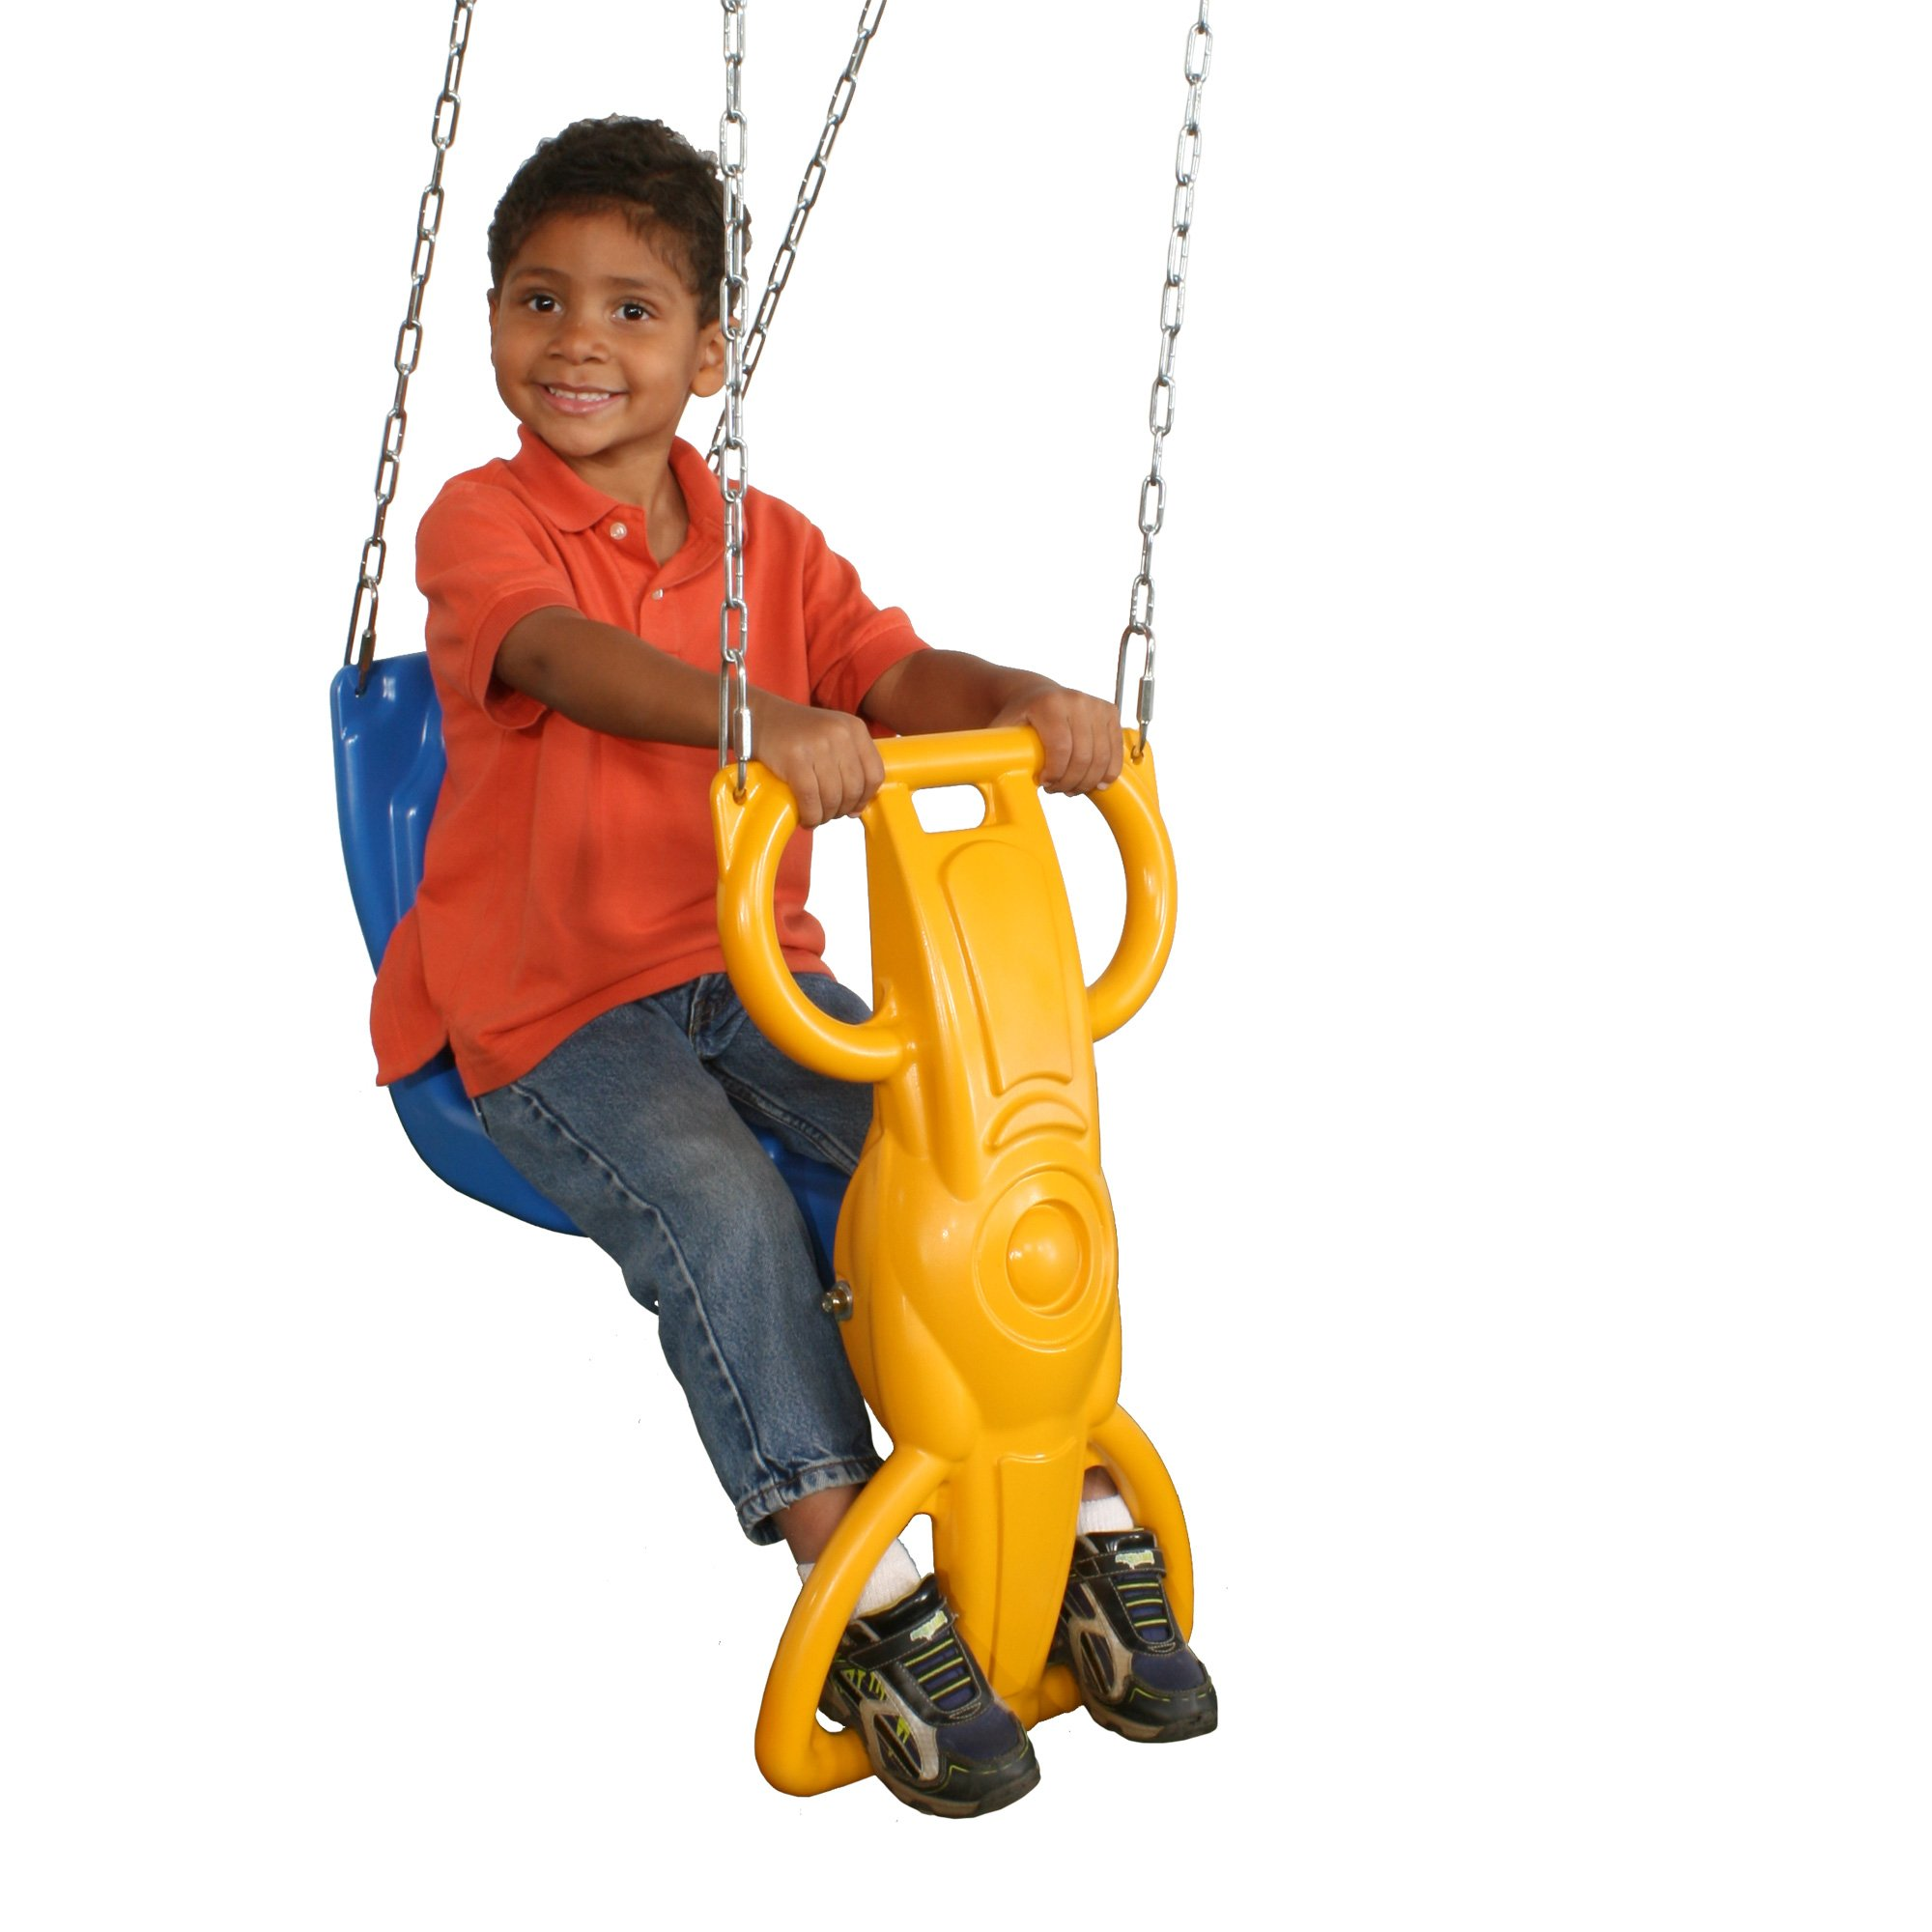 Wind Rider Glider Swing by Swing-N-Slide